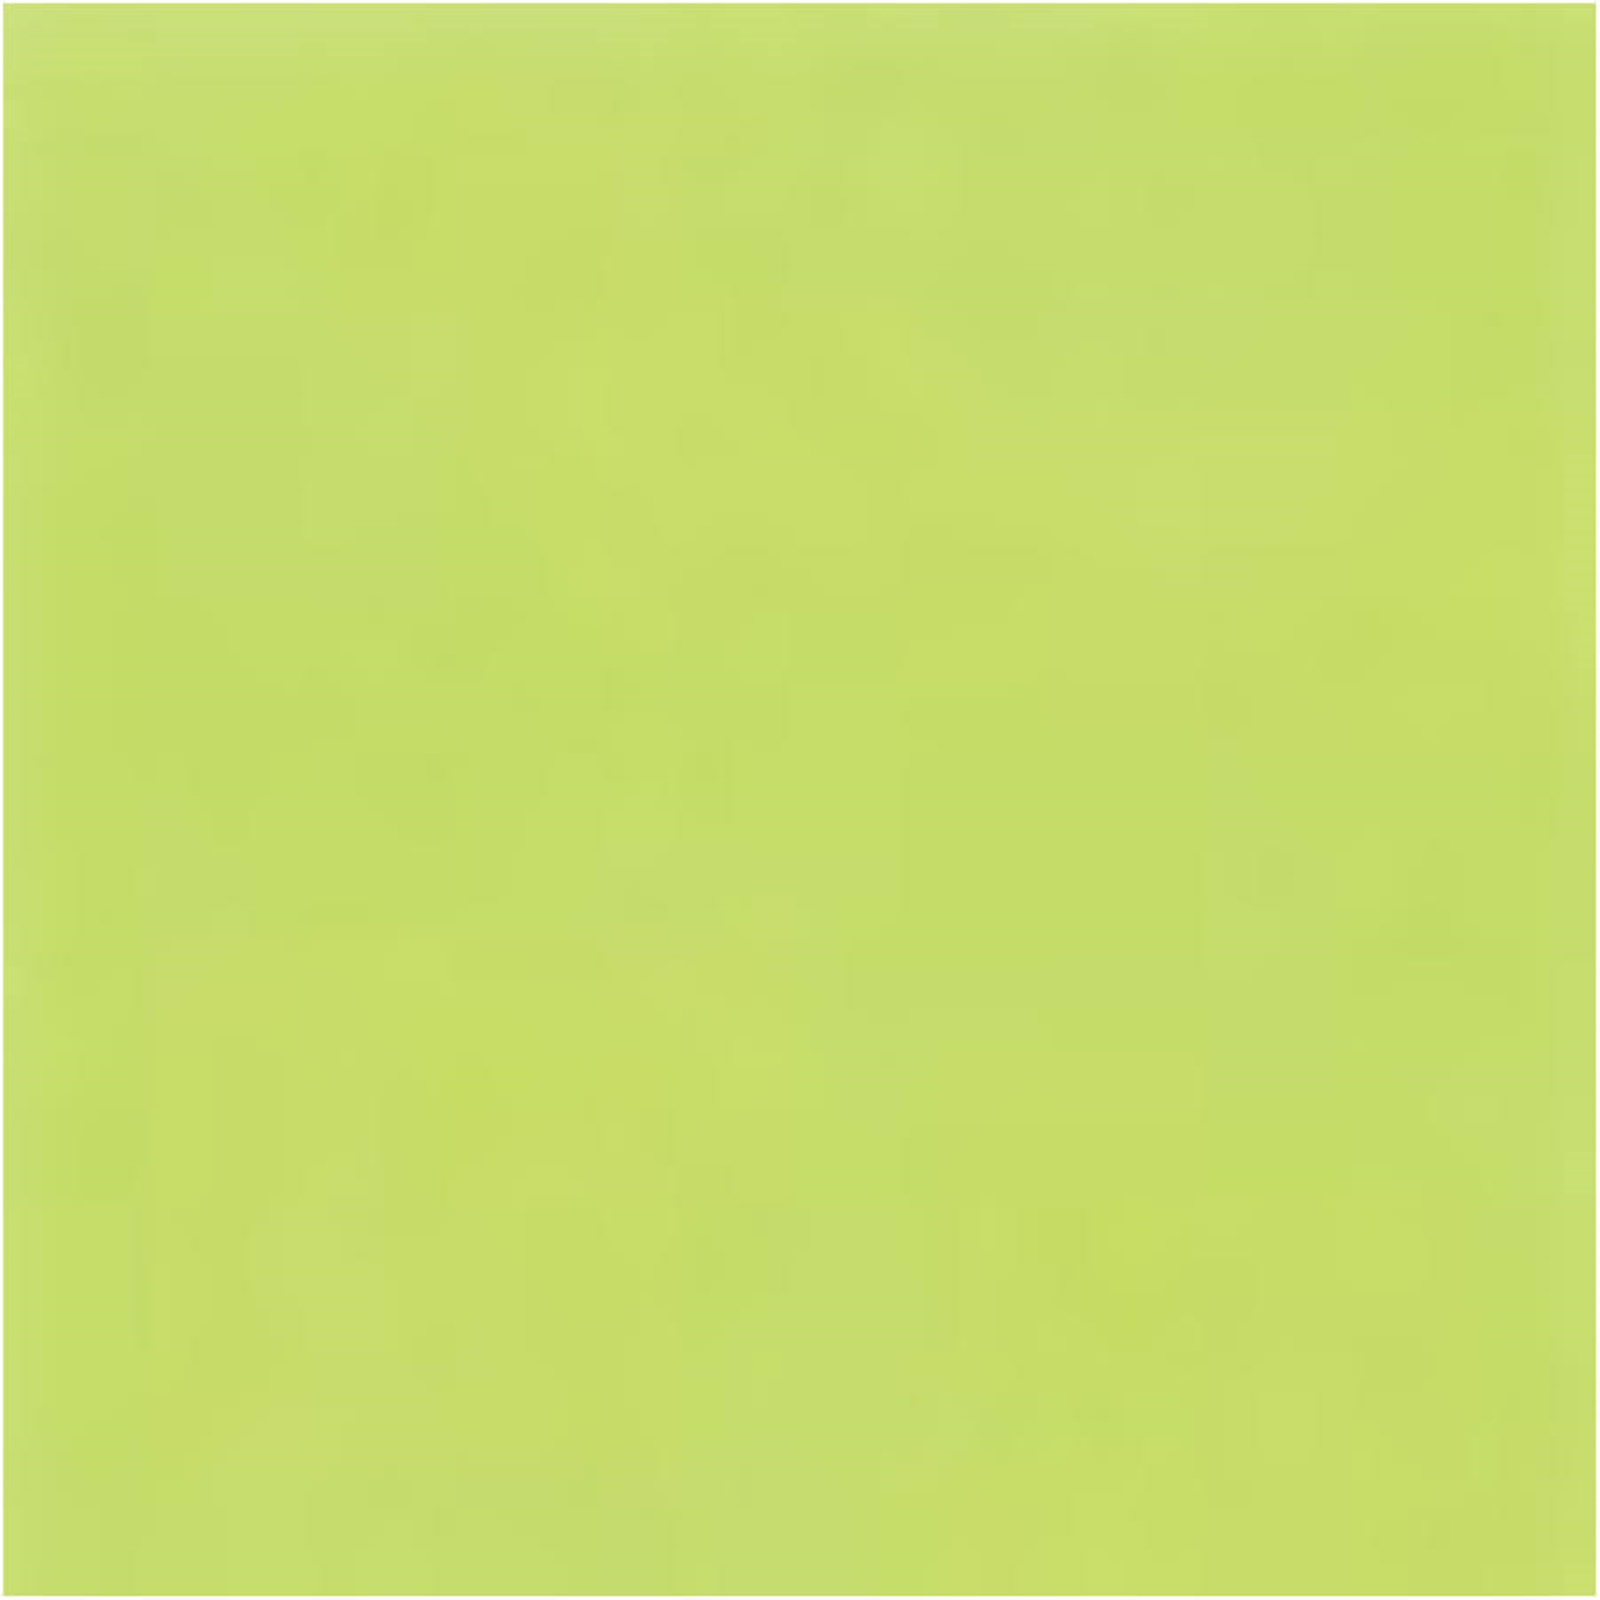 verde lime fosforescent